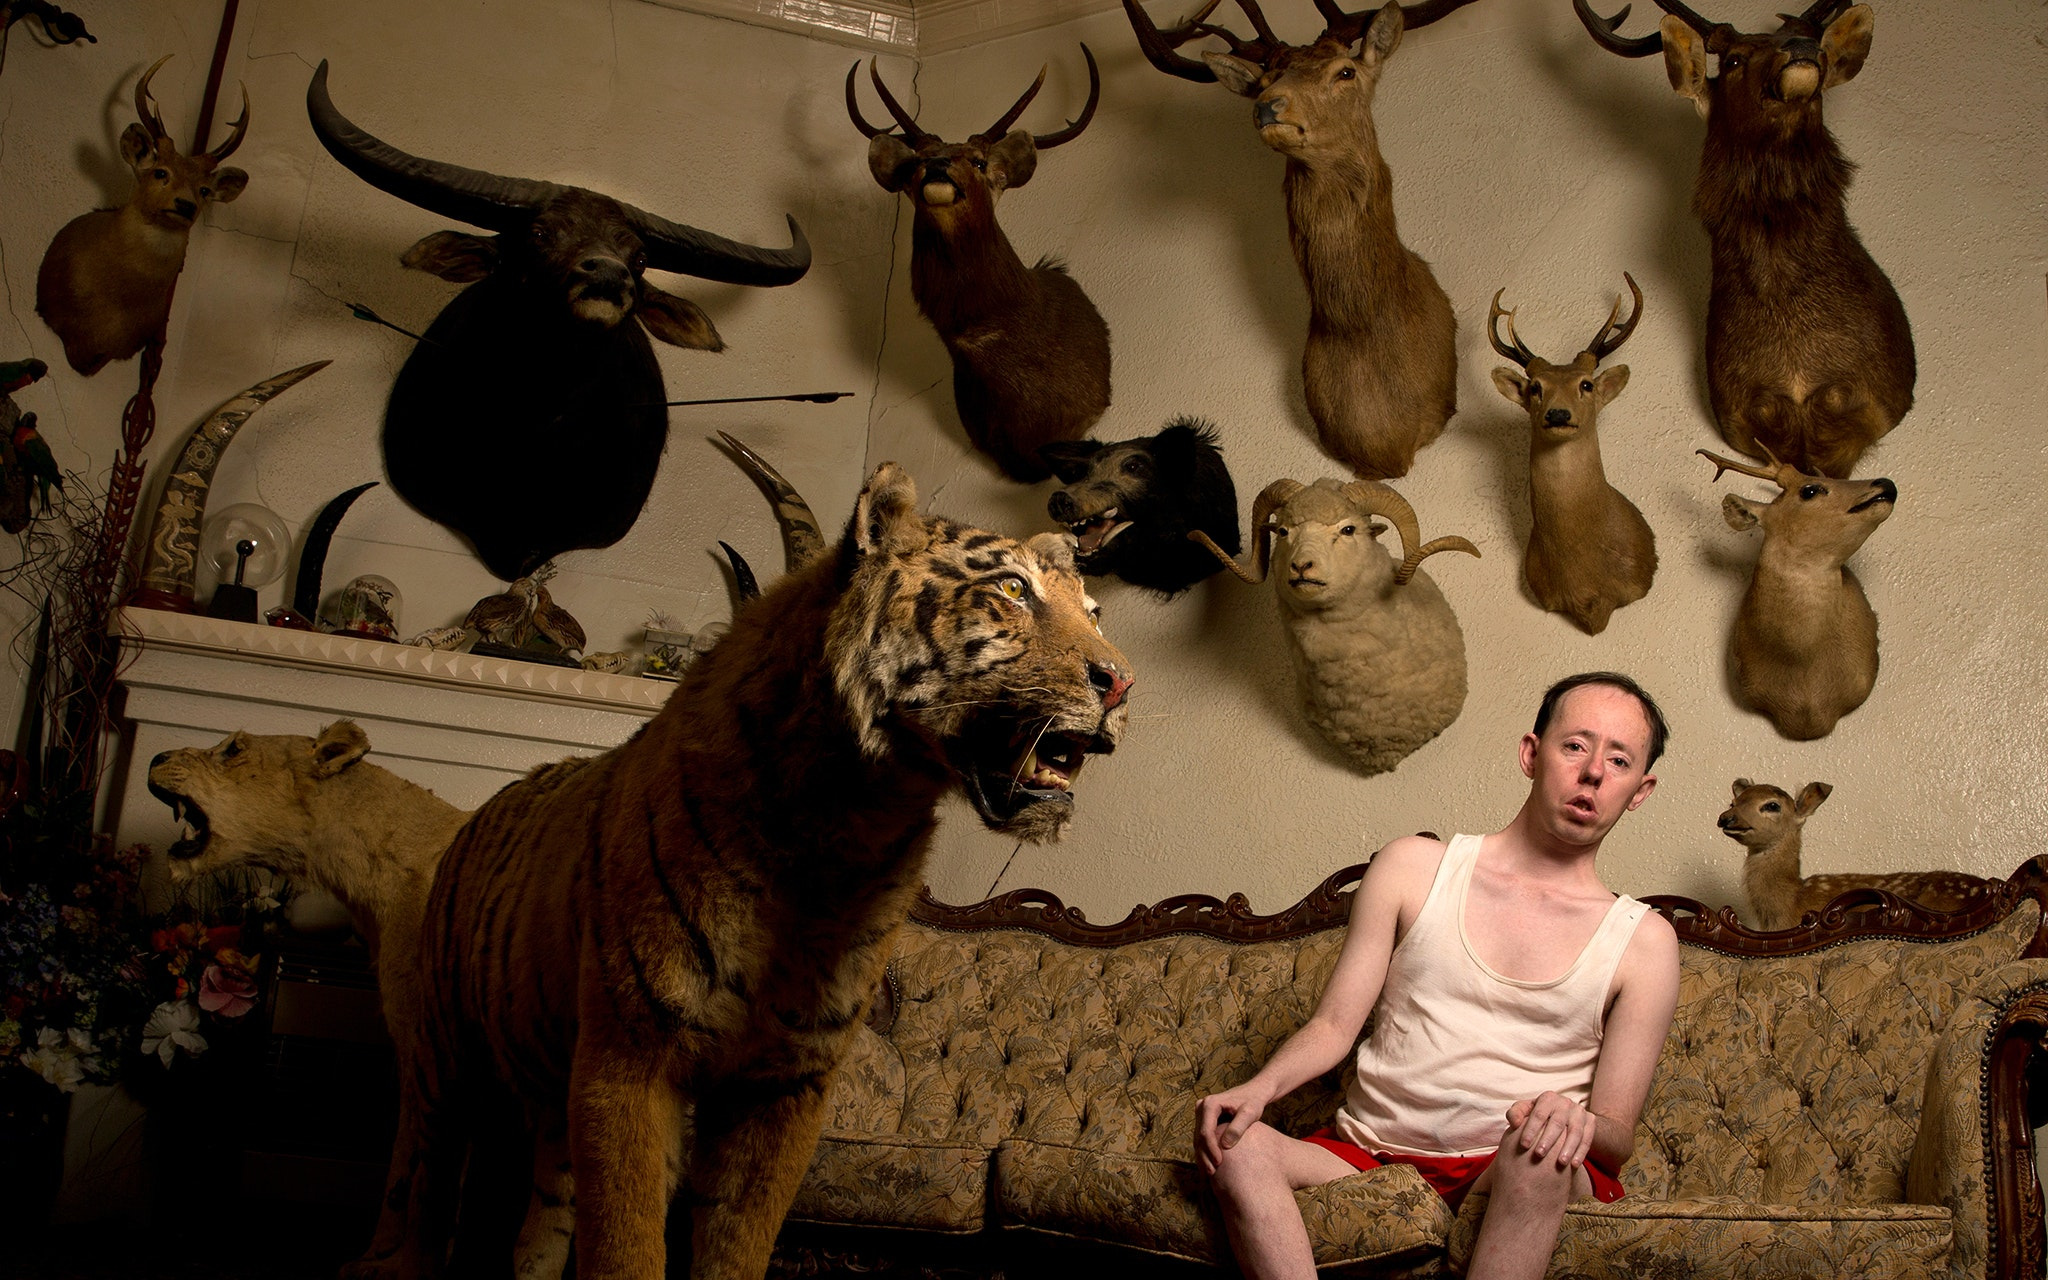 Man sitting on couch in front of a taxidermy tiger and several animal trophies hanging on the wall behind him.